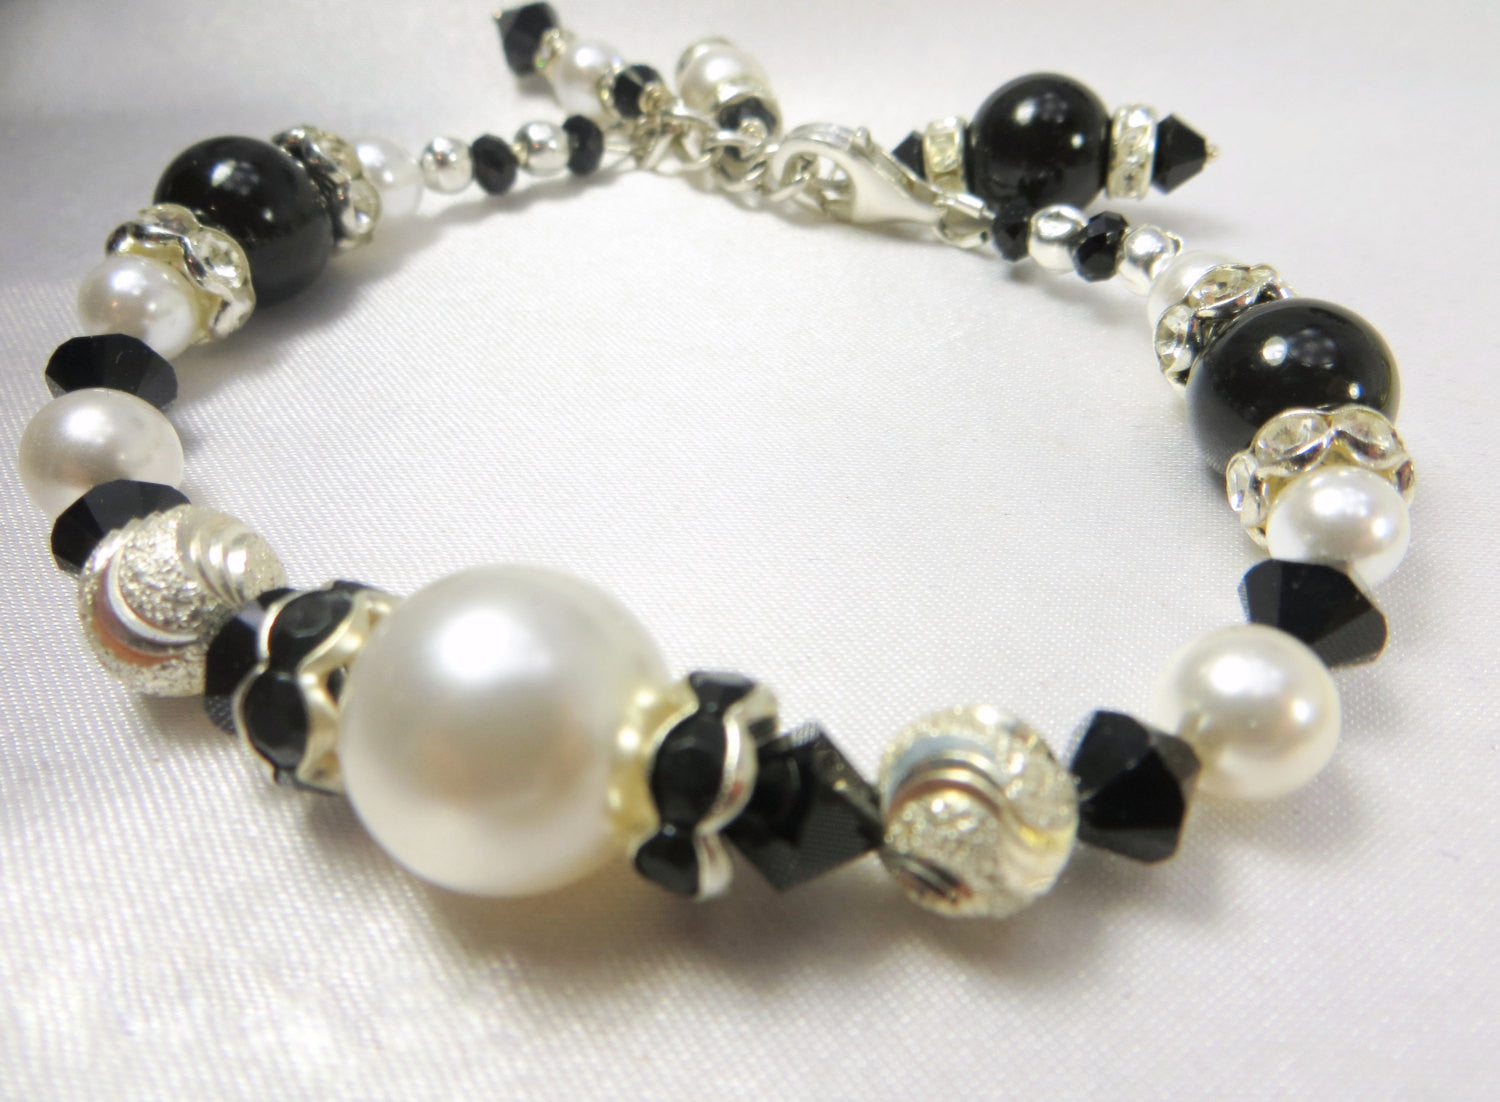 Black and White Bracelet with Swarovski Pearls, Onyx Stones, Diamond Cut Sterling Silver Beads and Crystal Rondelles - Odyssey Creations